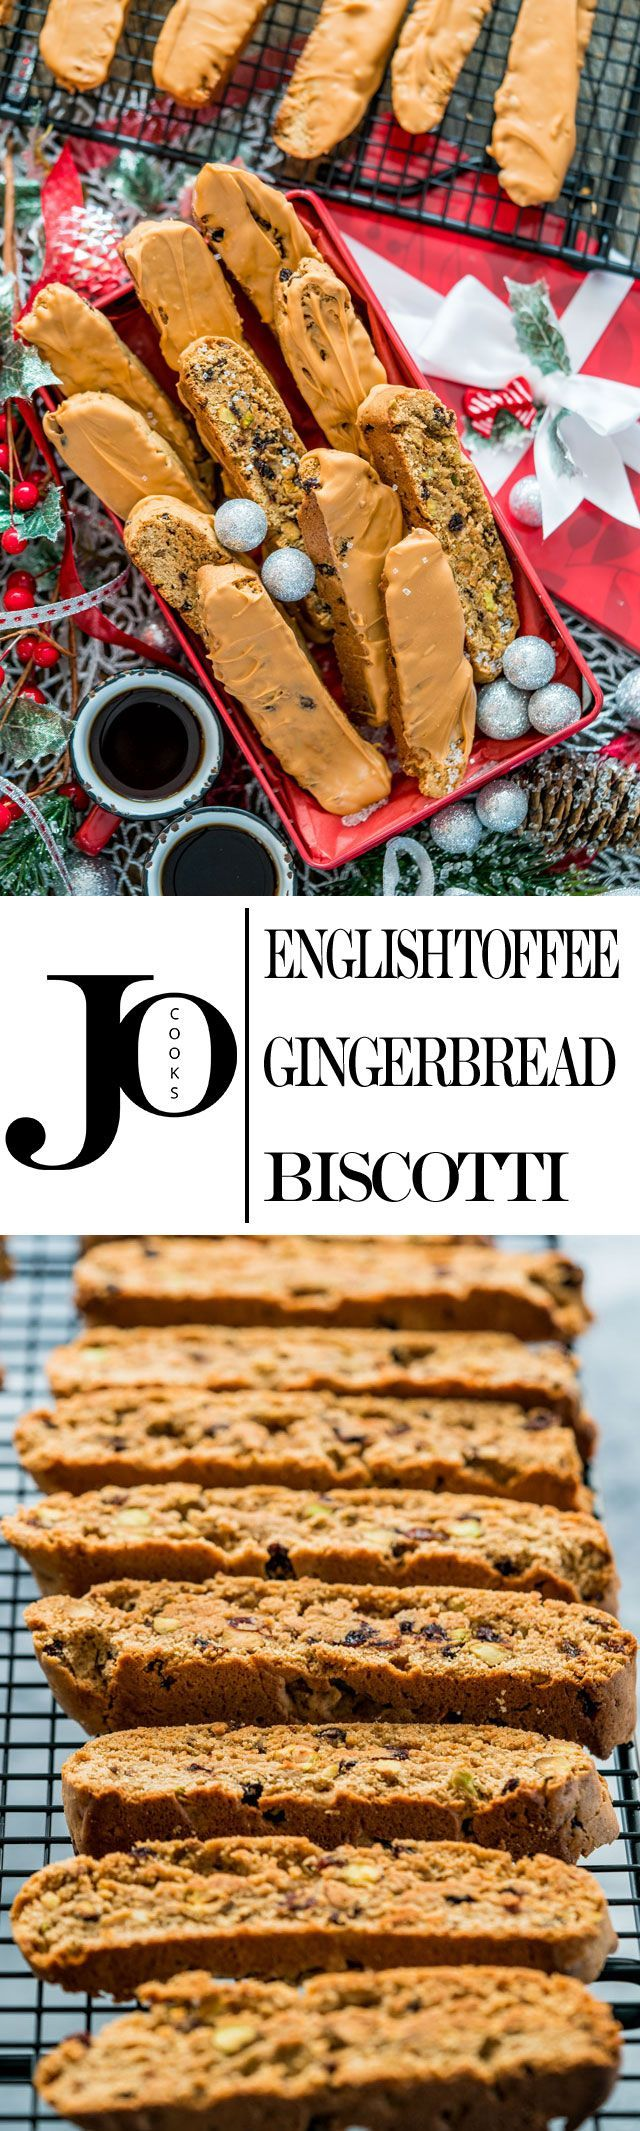 These English Toffee Gingerbread Biscotti are spiced up with lots of ginger, all spice and loaded with pistachios and currants, then dipped in English Toffee! Perfect for your morning cup of joe!